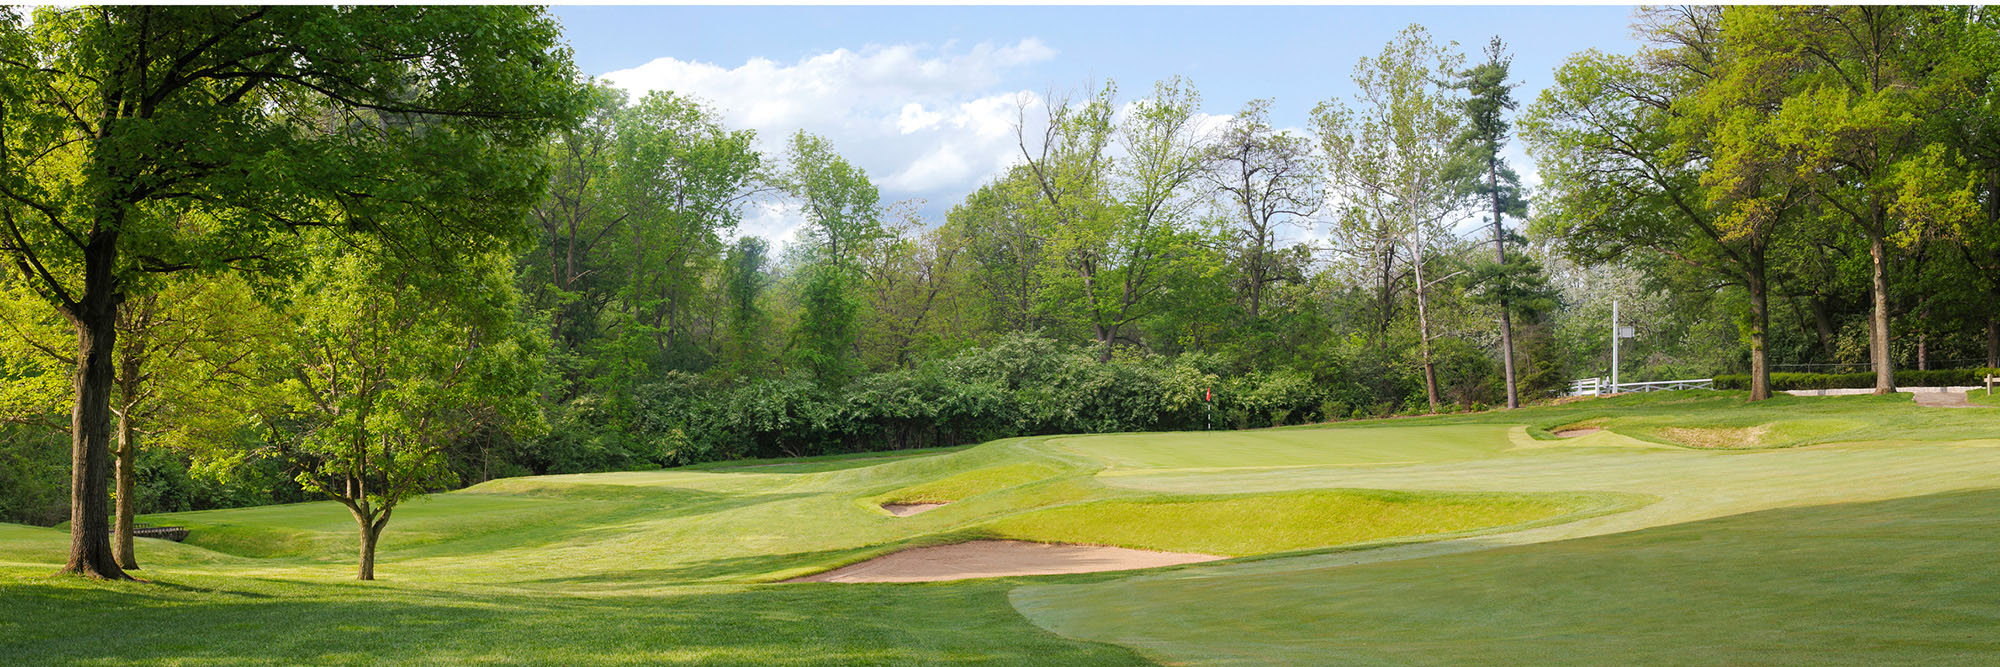 Golf Course Image - St. Louis Country Club No. 1